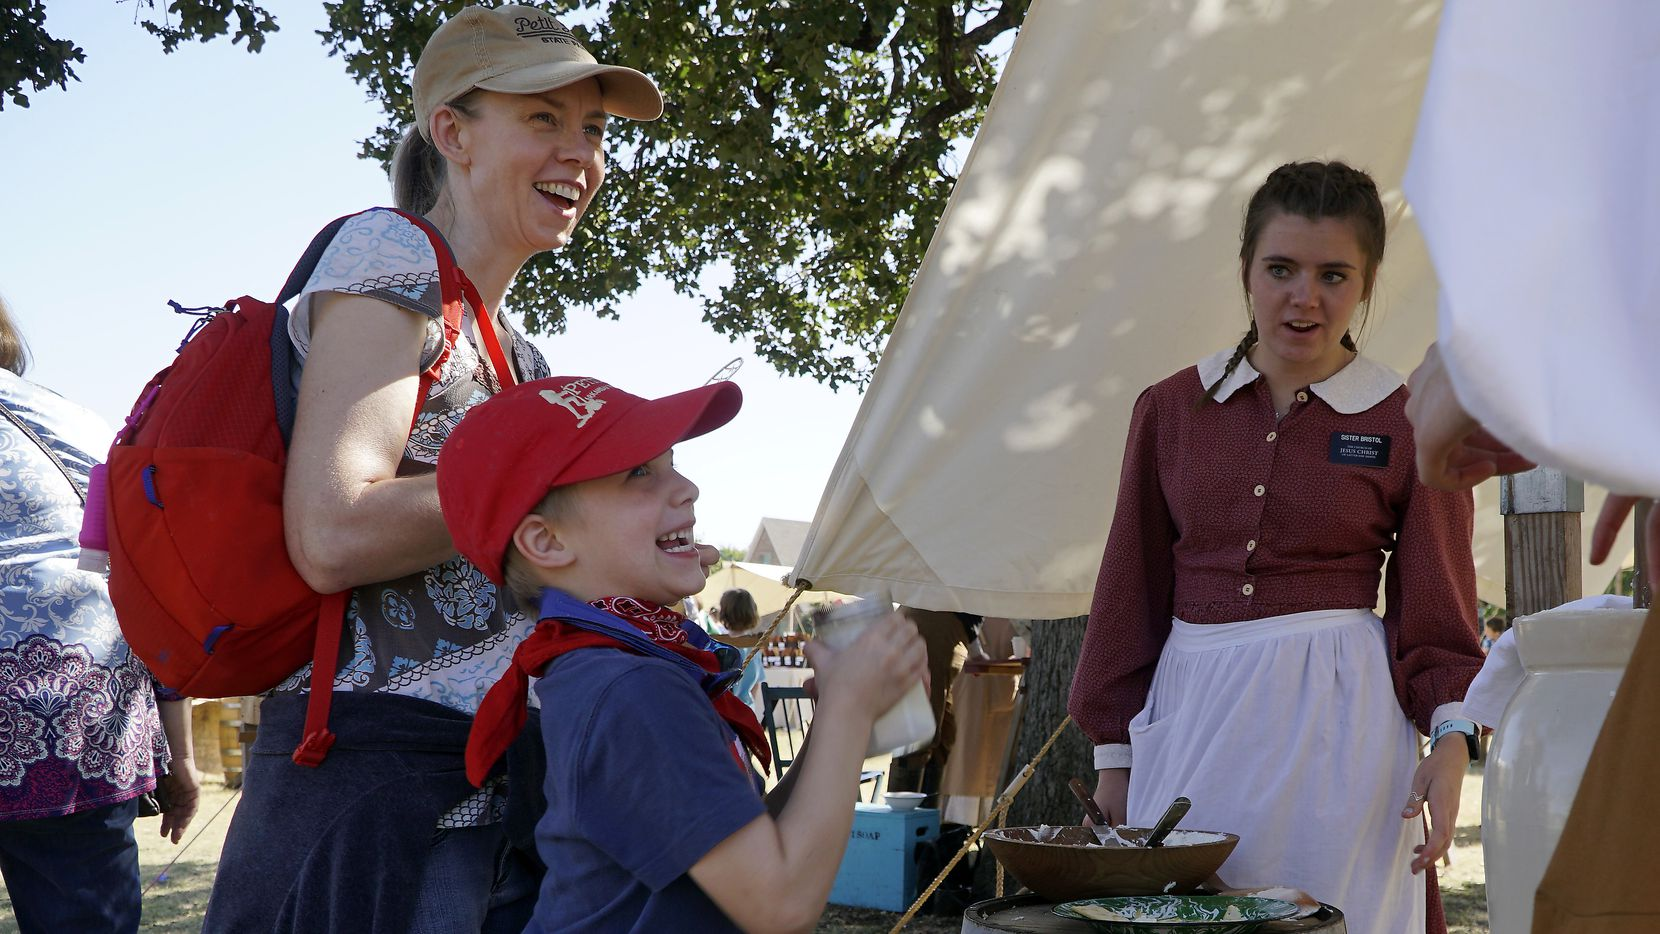 Missy Tucker (left) and her son Samuel Tucker tried making butter as Bailee Bristol looked on during a visit to Nash Farm last fall.